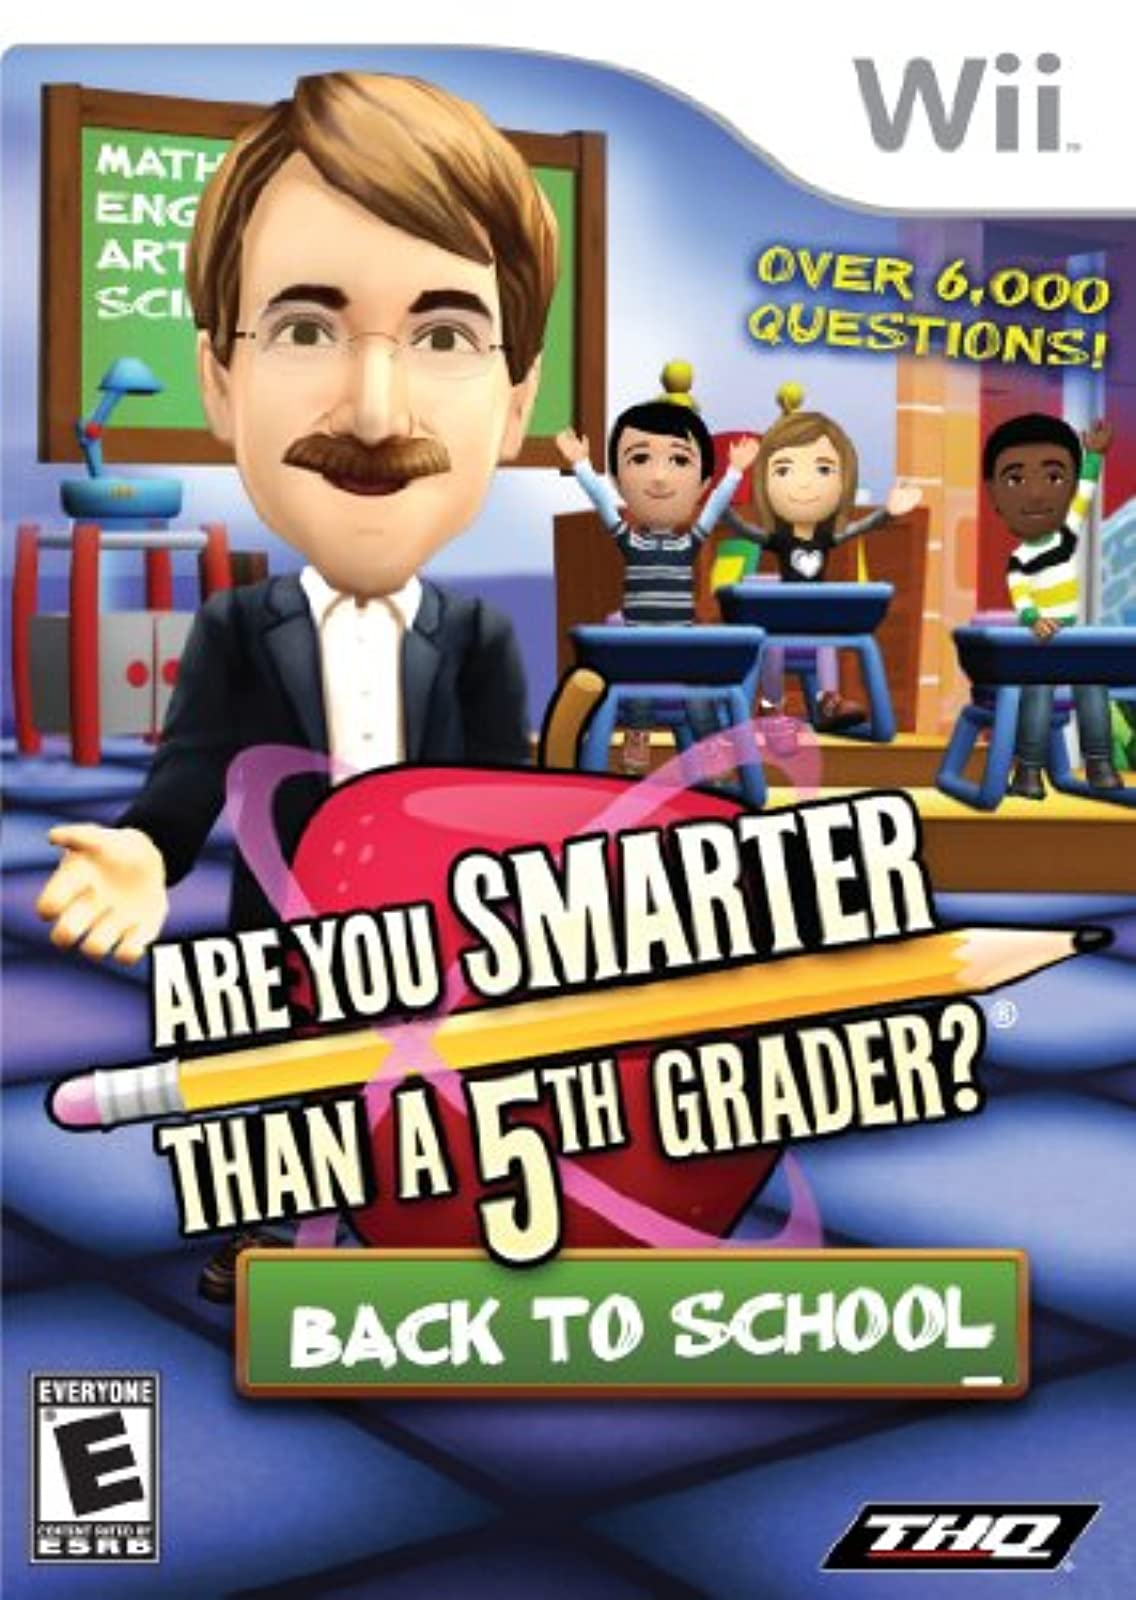 Are You Smarter Than A 5th Grader: Back To School For Wii and Wii U